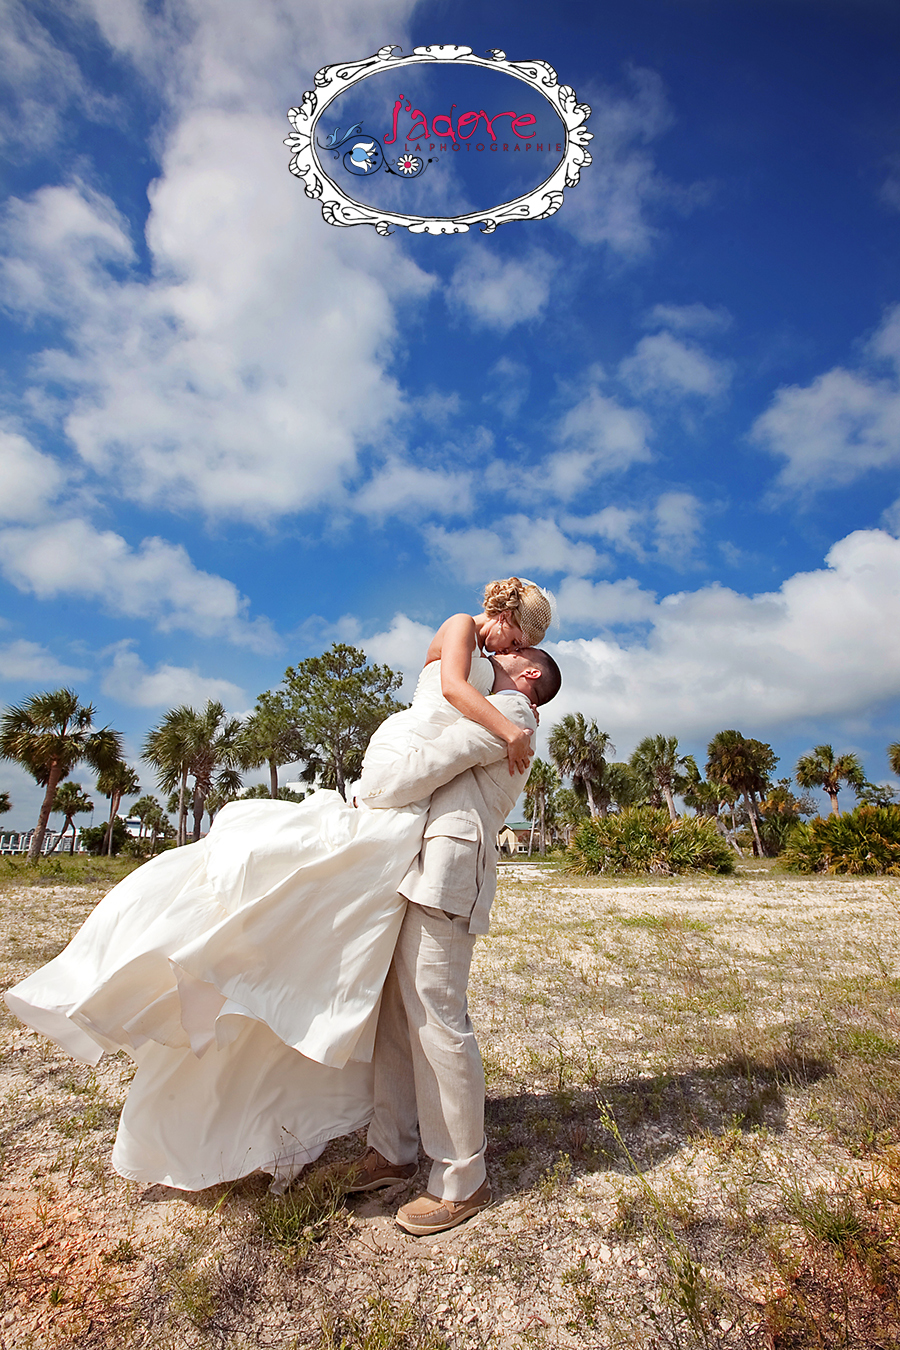 Jadore_photographie_erin_heath_wedding_photography_gulf_shores_alabama_wedding_photographer_bride_groom-108.full